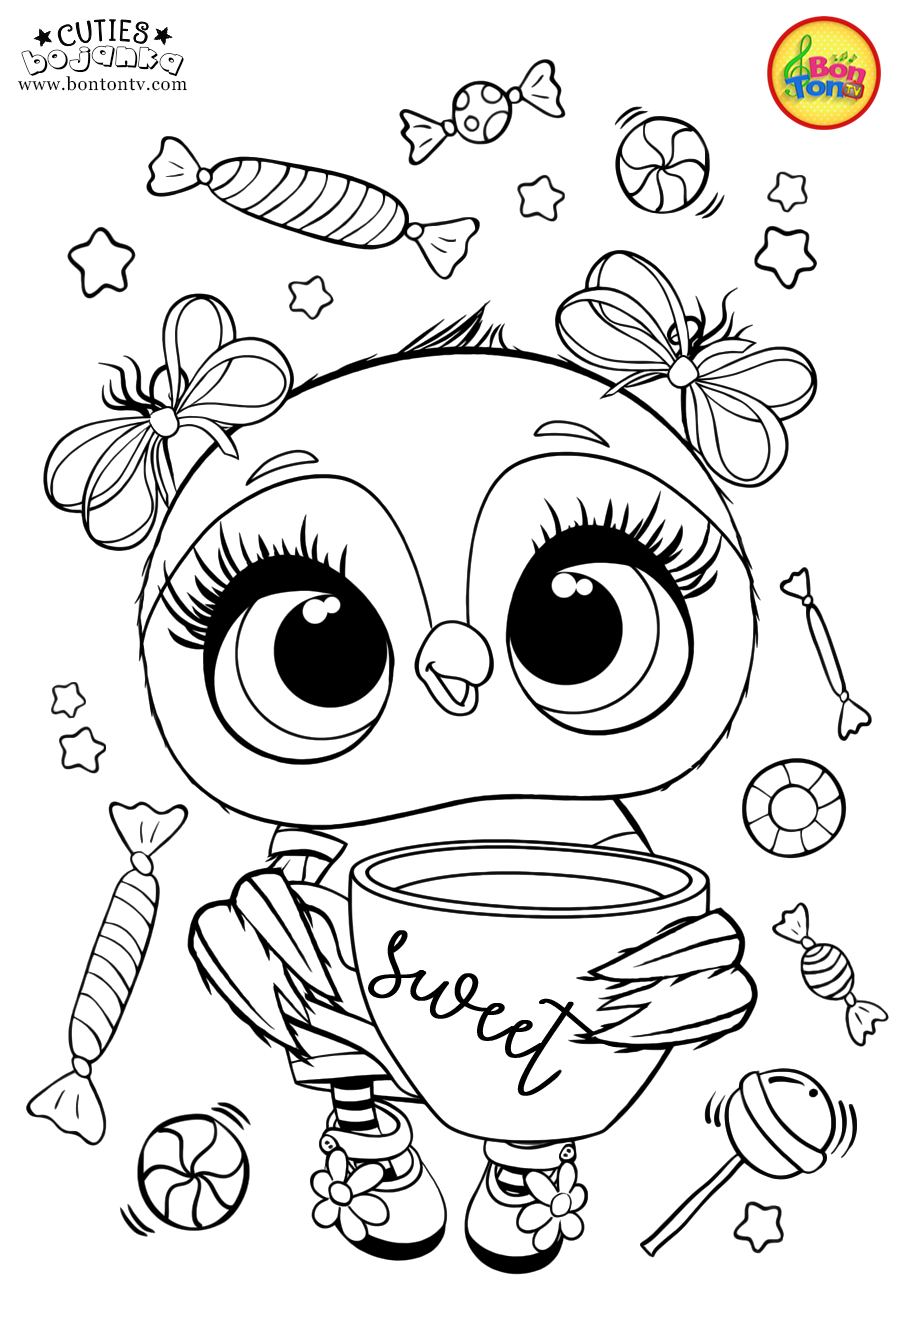 Cuties Coloring Pages For Kids - Free Preschool Printables